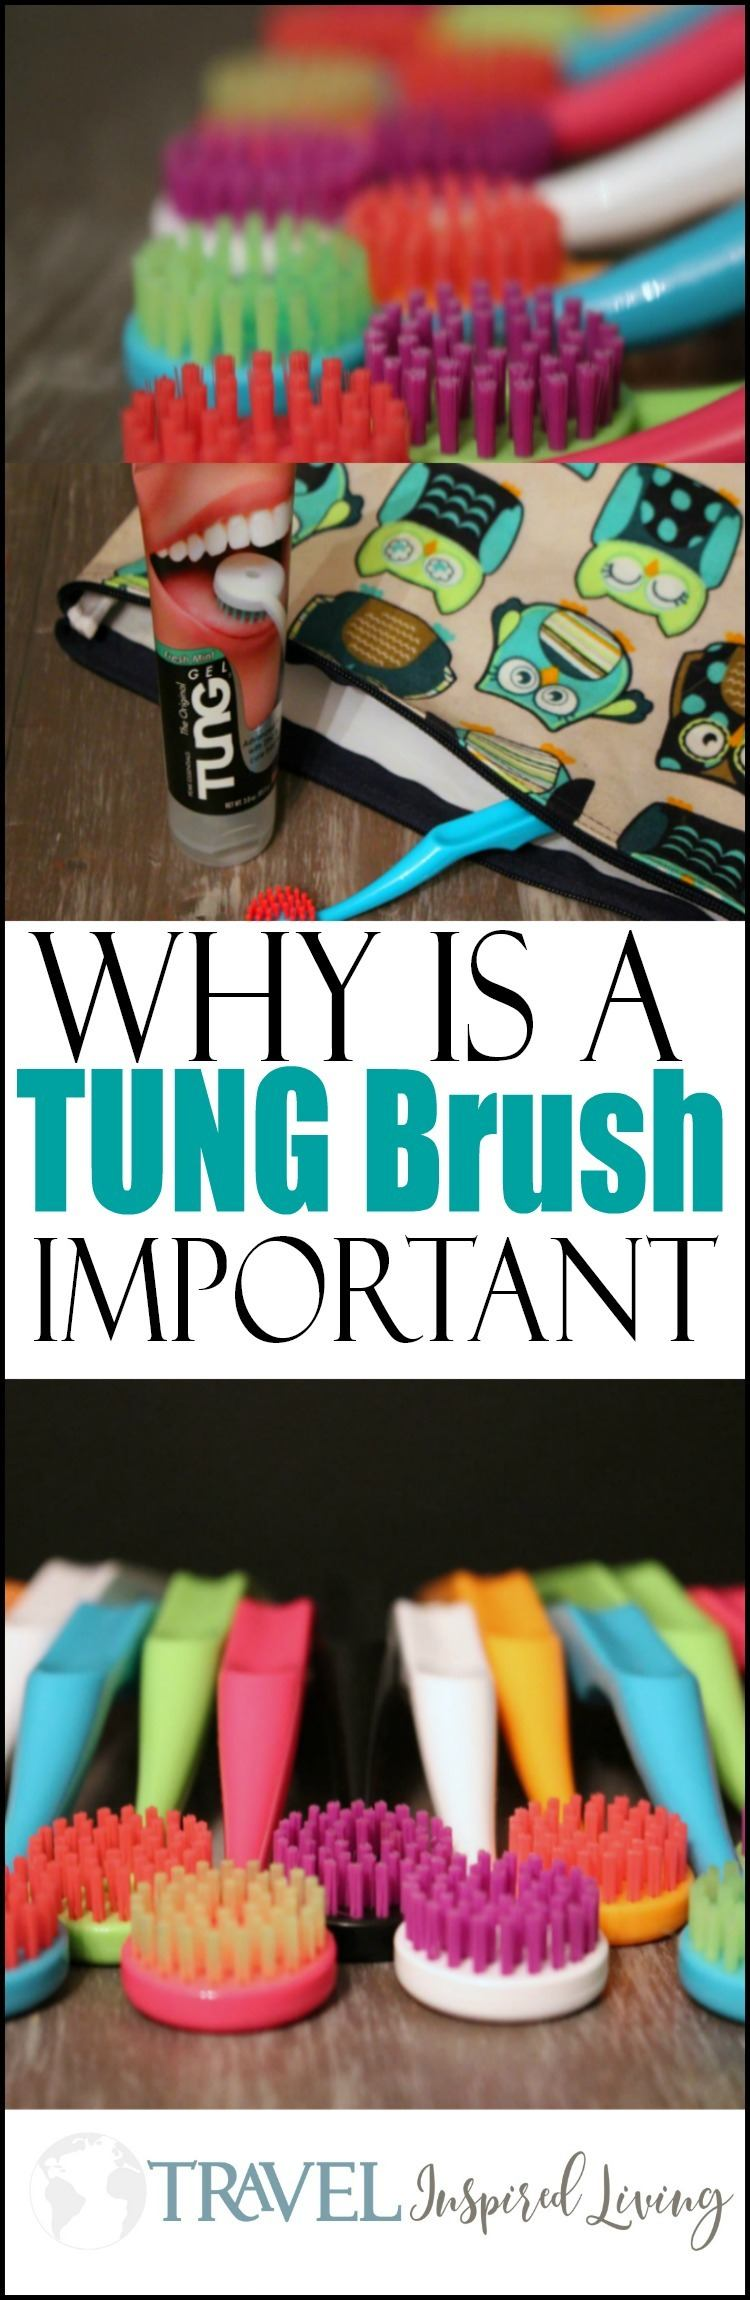 Learn why a TUNG brush is important and save money when you use this TUNG brush discount code on your next purchase.